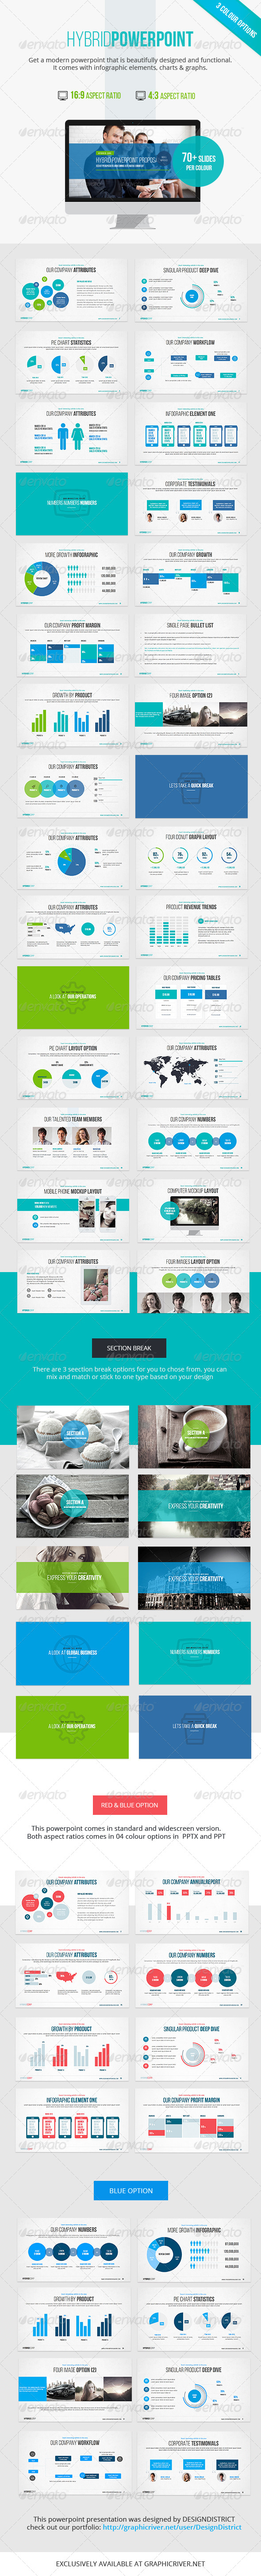 GraphicRiver Hybrid Powerpoint Presentation 6965029